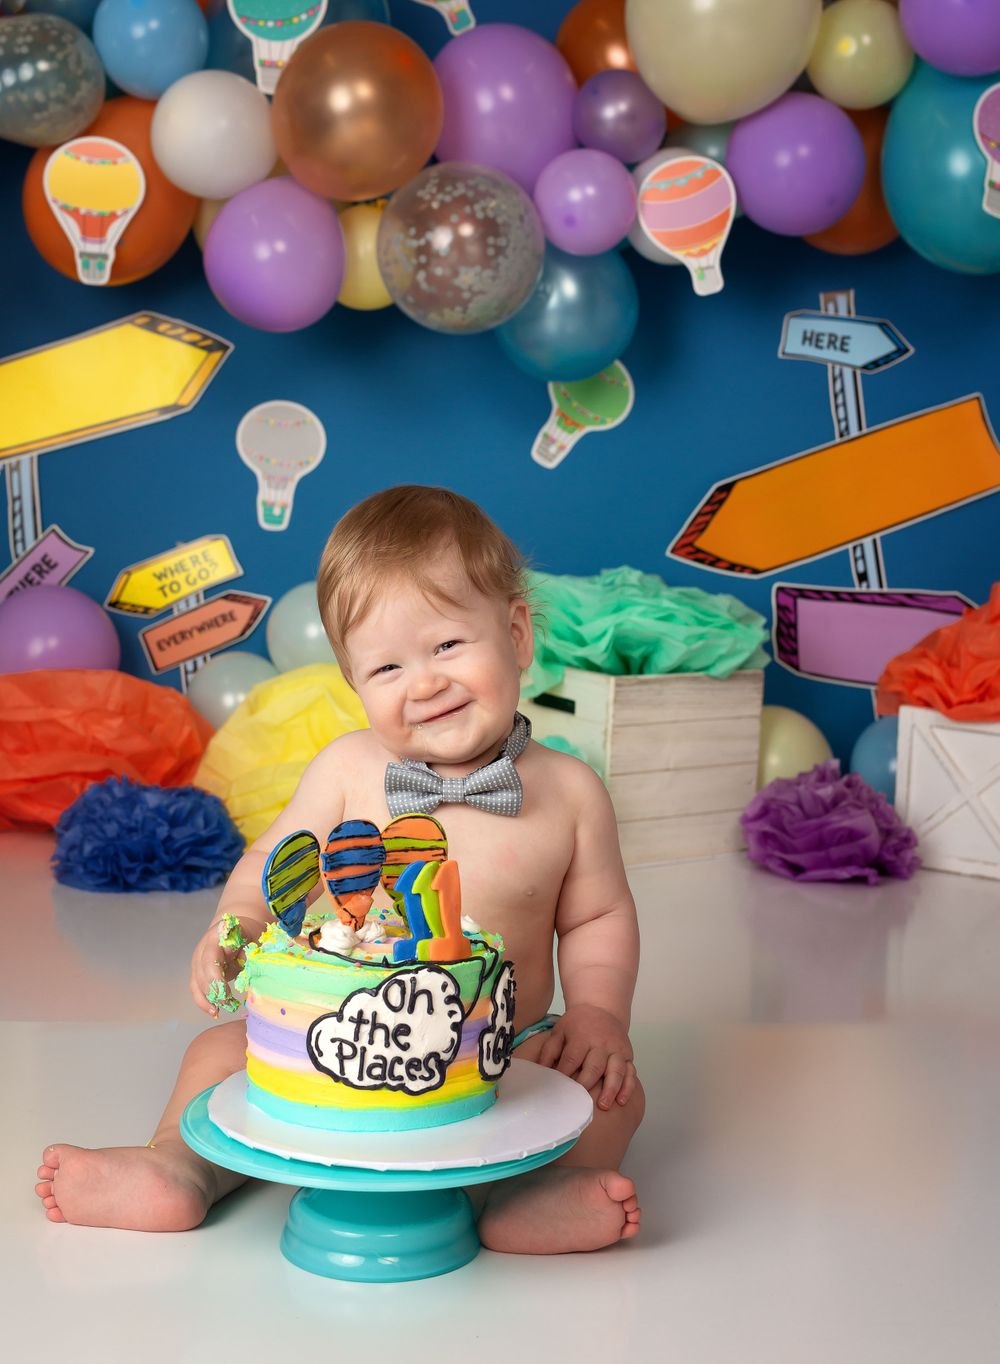 austin newborn photography cake smash Oh the places you'll go balloon garland one year session